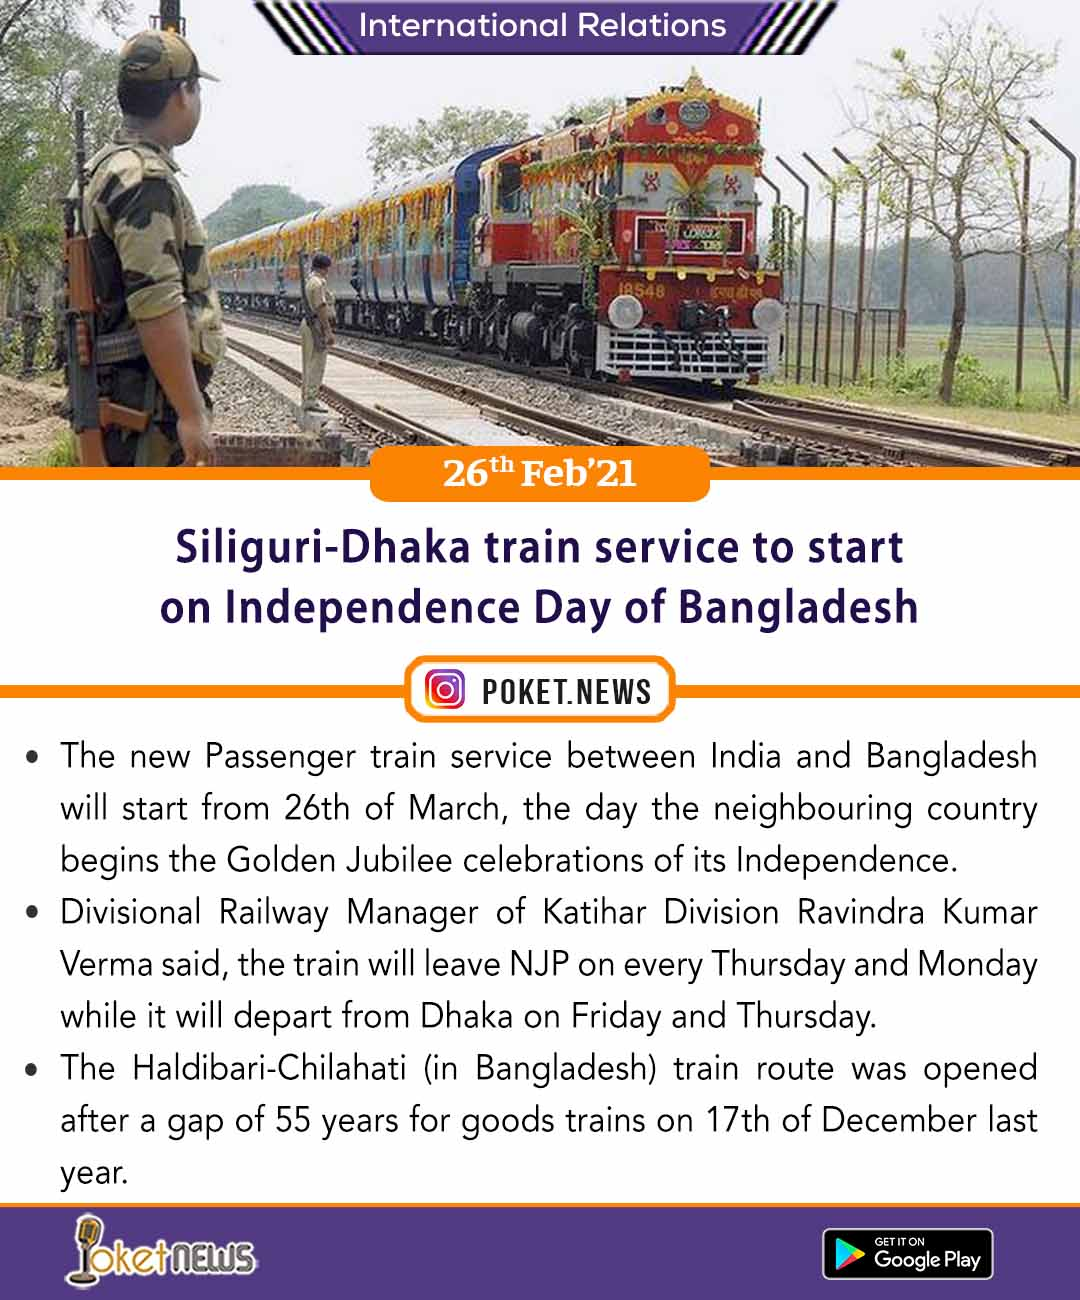 Siliguri-Dhaka train service to start on Independence Day of Bangladesh